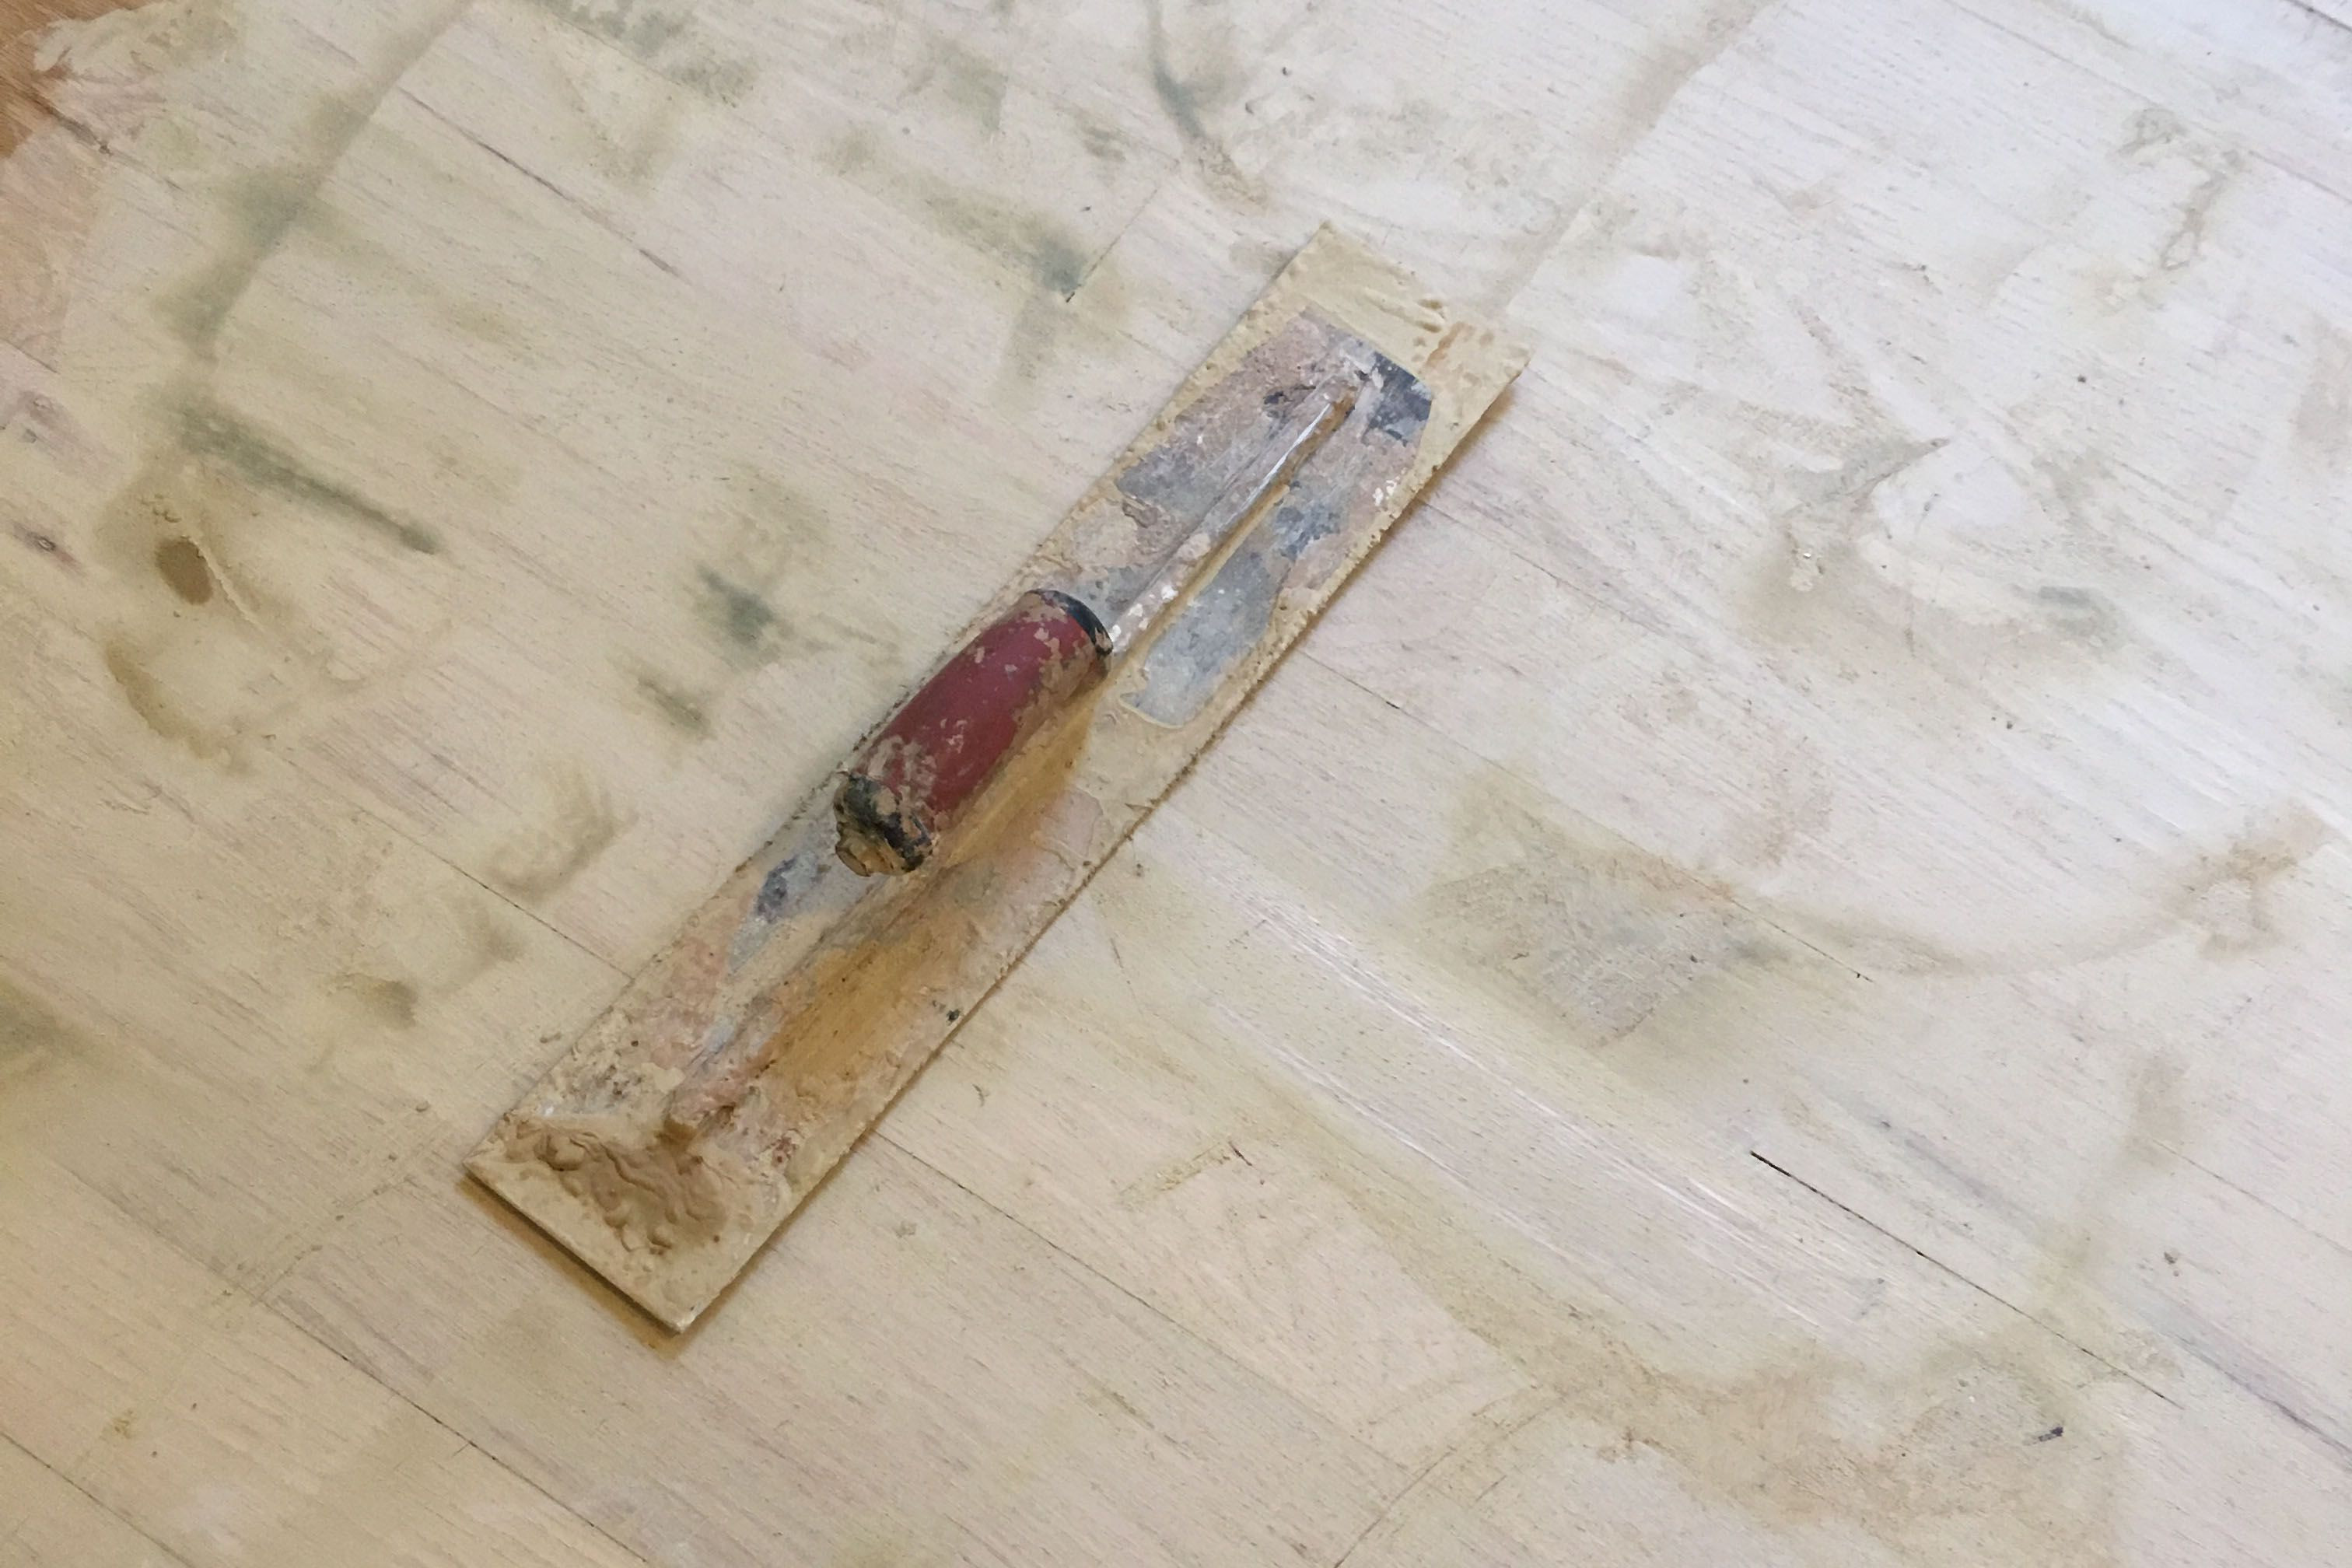 15 Stylish How to Refinish Hardwood Floors Yourself without Sanding 2021 free download how to refinish hardwood floors yourself without sanding of 7 things to know before you refinish hardwood floors for trough hardwood floor manhattan avenue via smallspaces about com 57913878